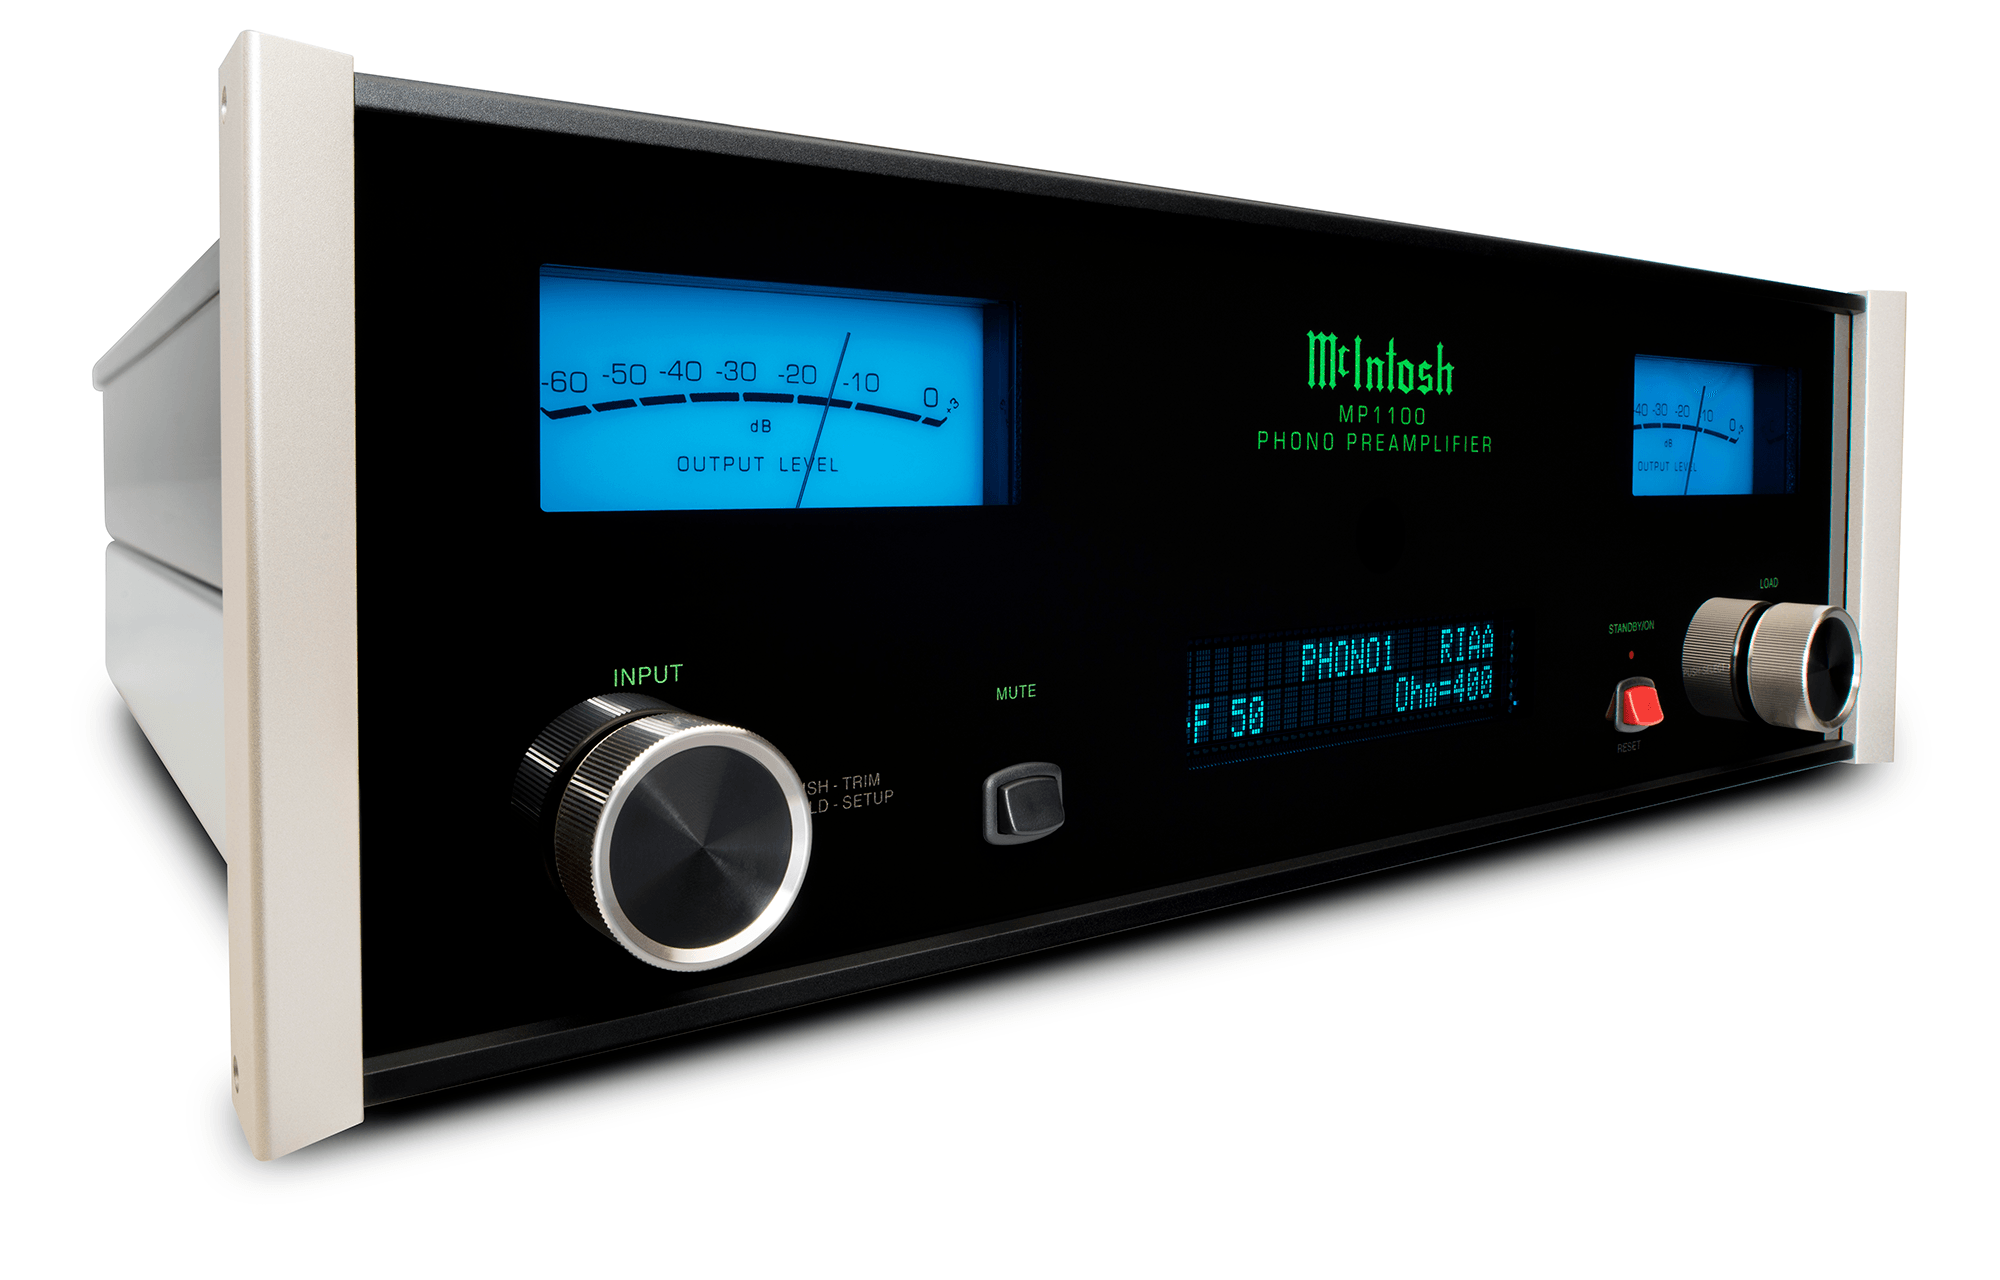 McIntosh MP1100 Vacuum Tube Phono Preamplifier